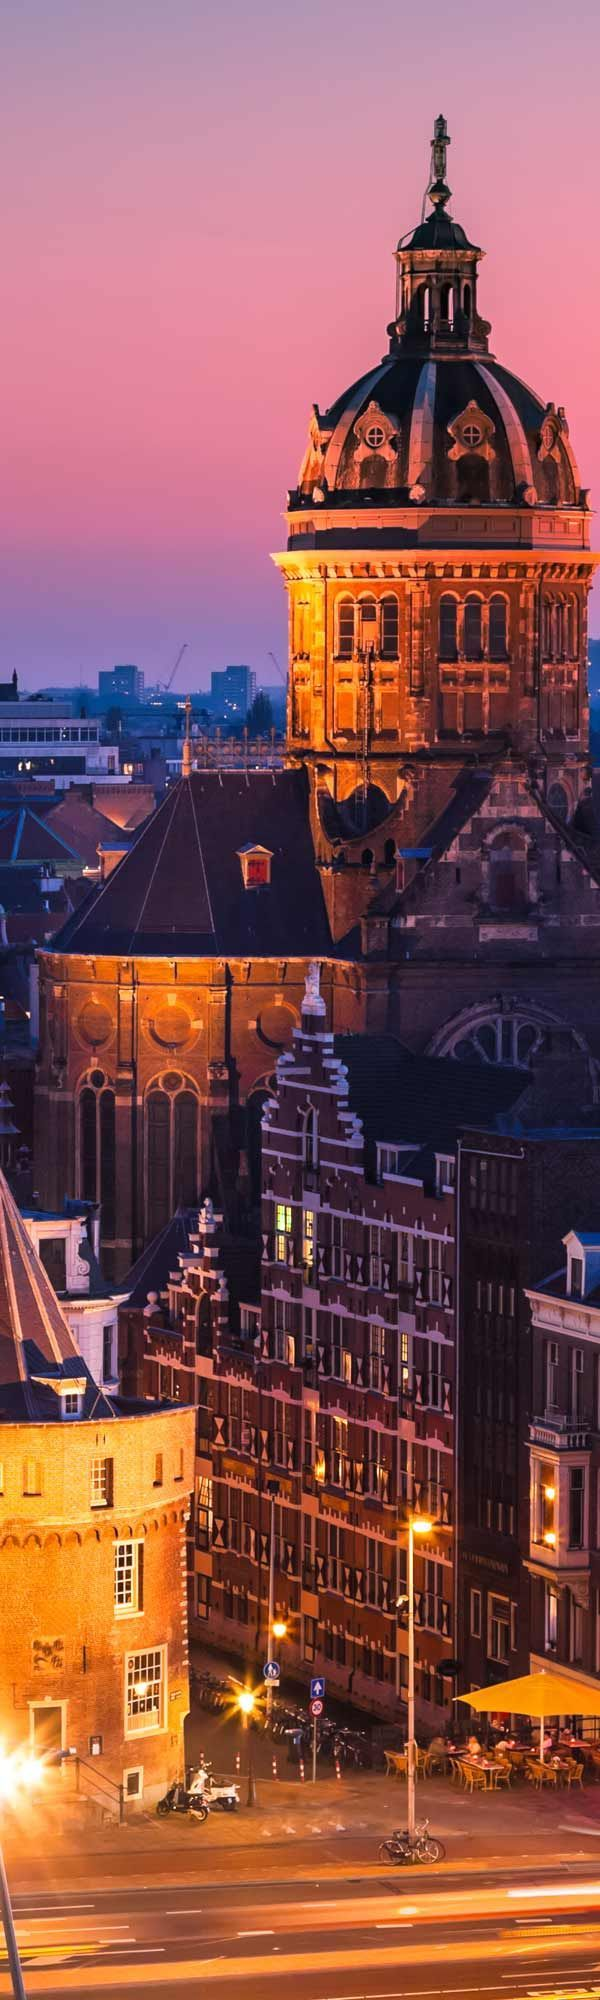 Amsterdam, The Netherlands                                                                                                                                                                                 もっと見る